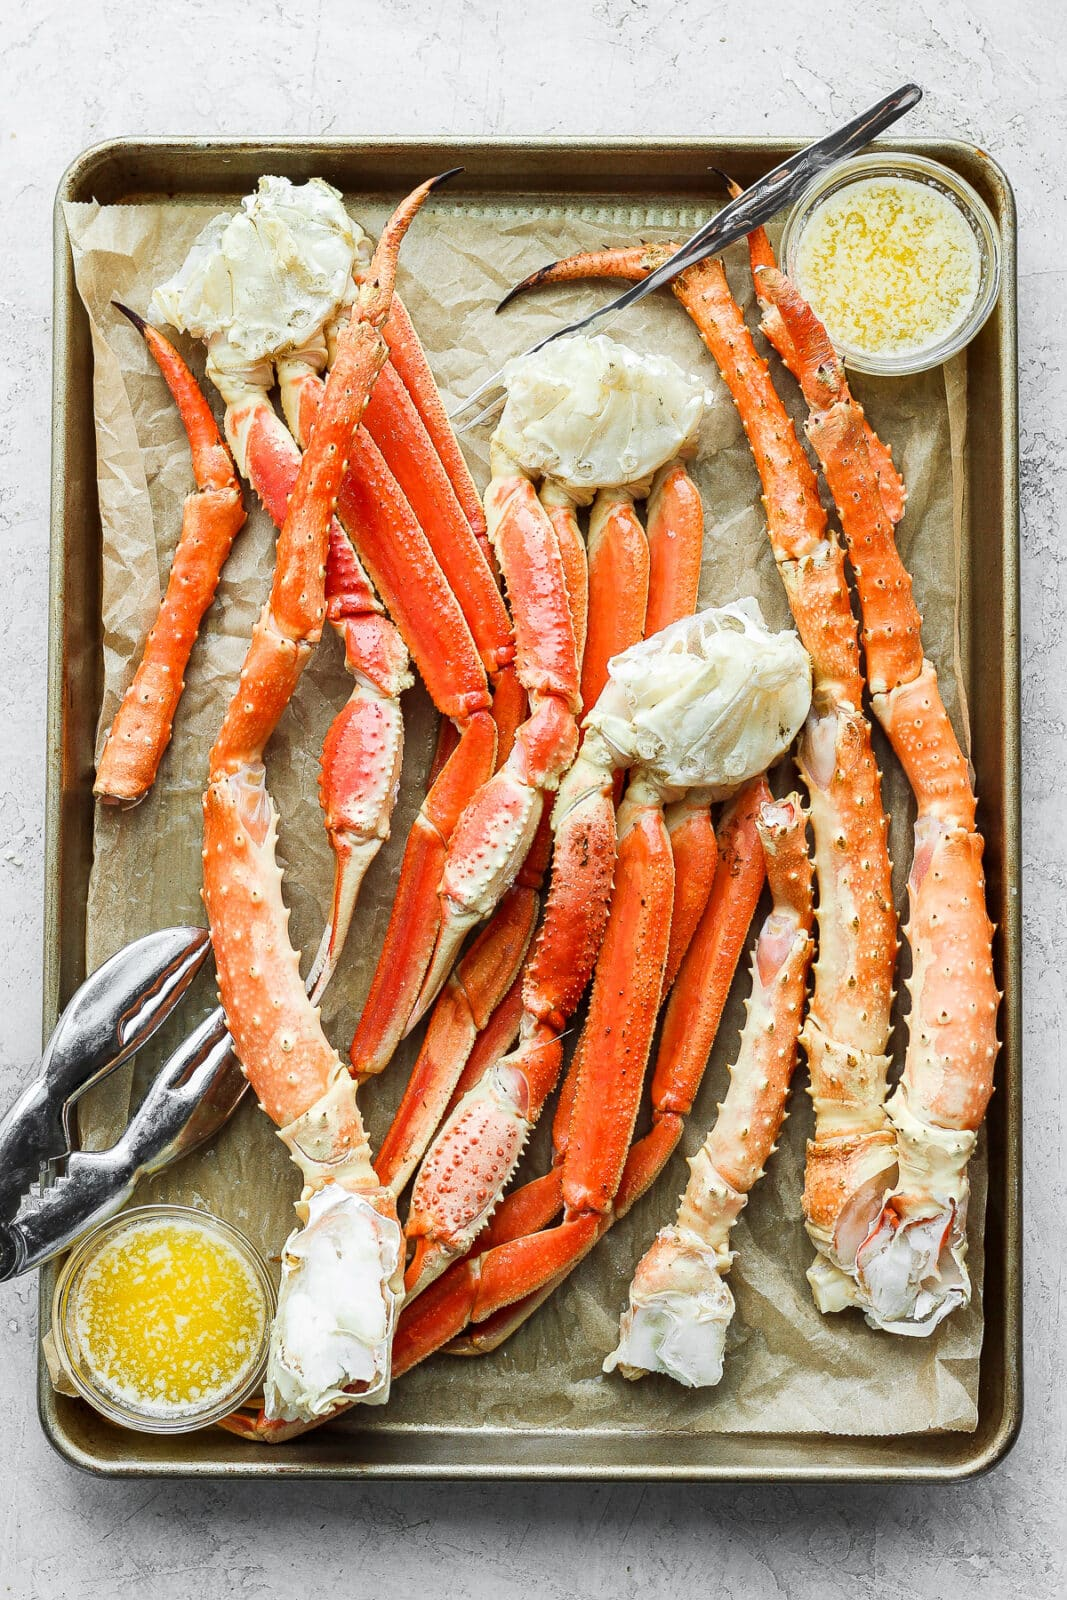 Parchment lined baking sheet filled with show crab and king crab legs as well as some bowls of ghee.